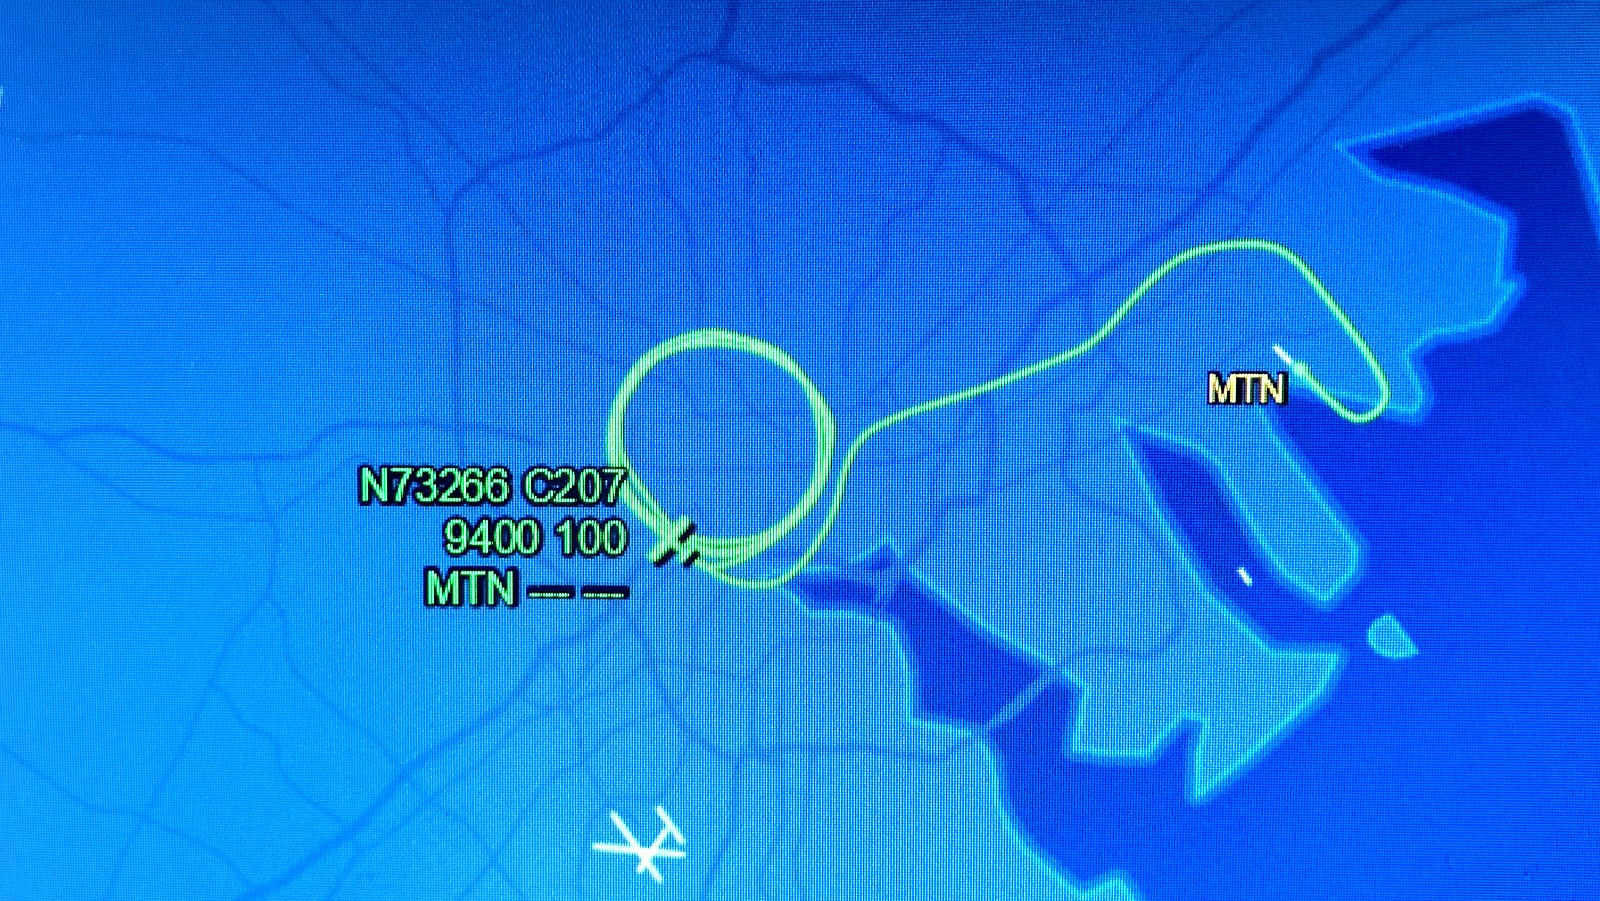 The path of the Baltimore Police aerial surveillance plane as it flew over the city on May 2, 2020. (flightaware.com)